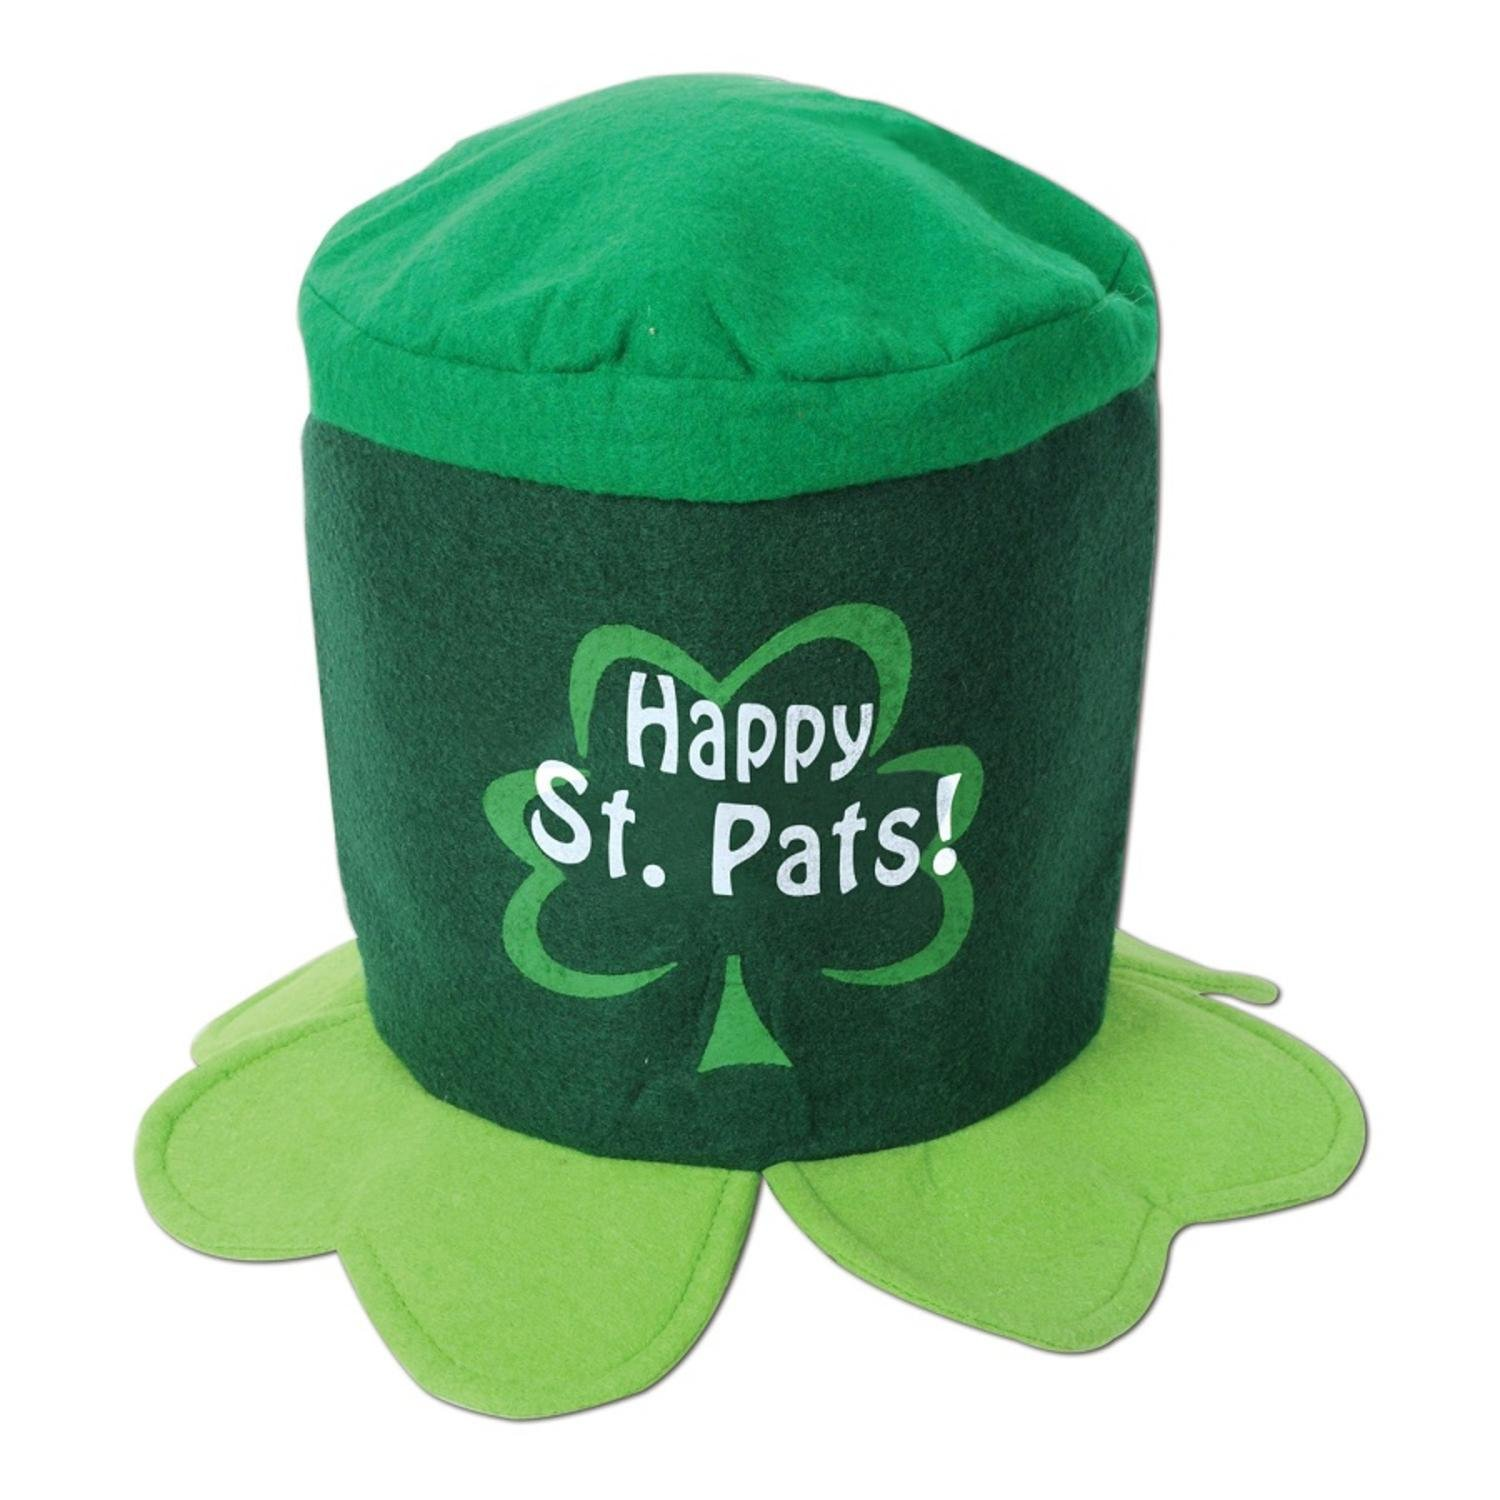 Club Pack of 12 Happy St. Pats! Hat St. Patrick's Day Costume Accessories